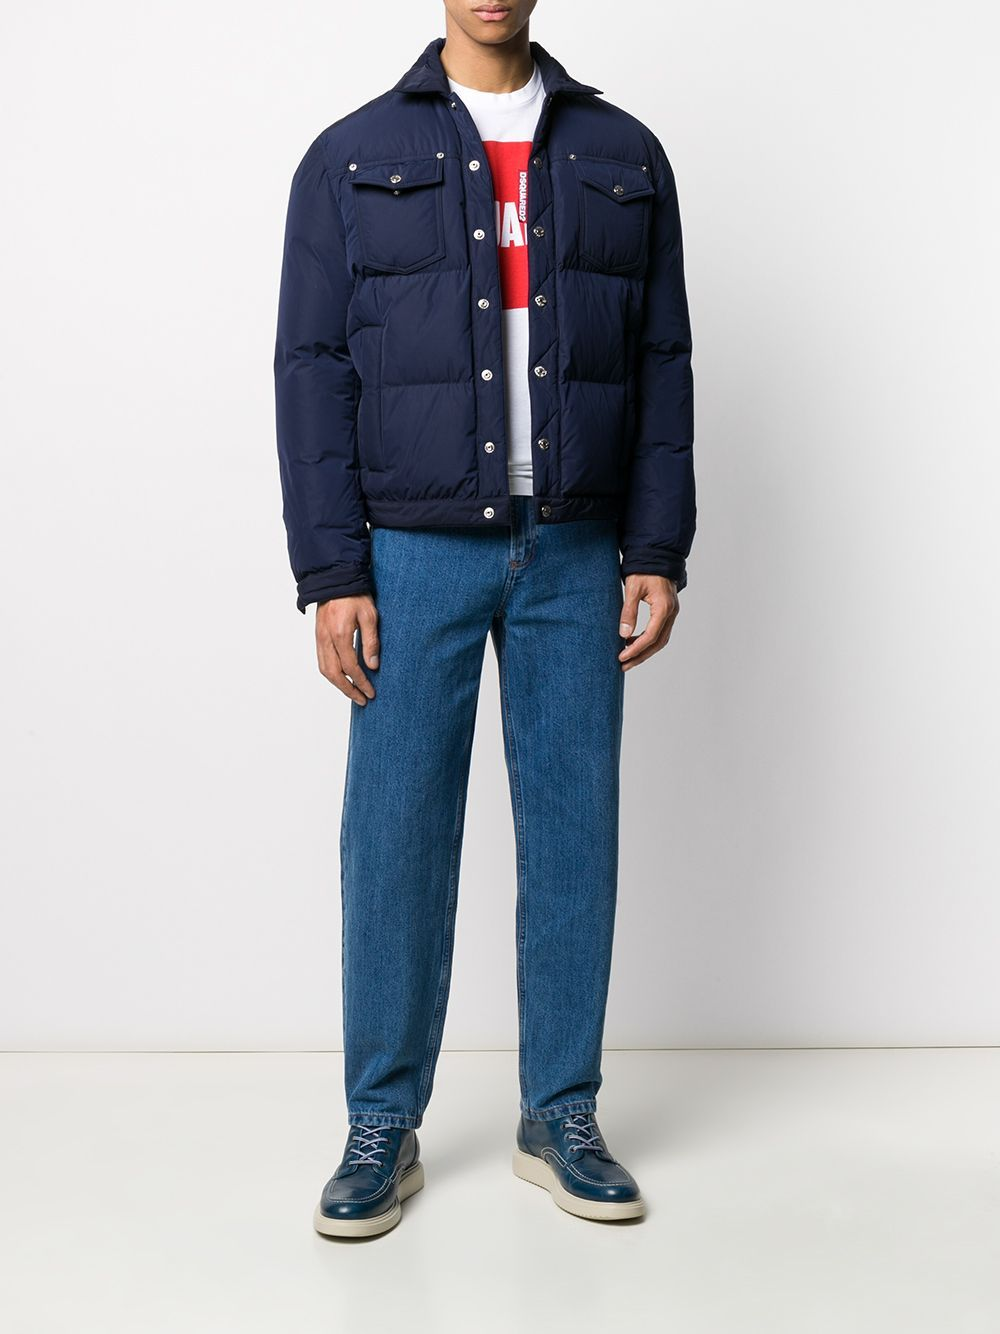 DSQUARED2 Padded Trucker Jacket Navy - Maison De Fashion